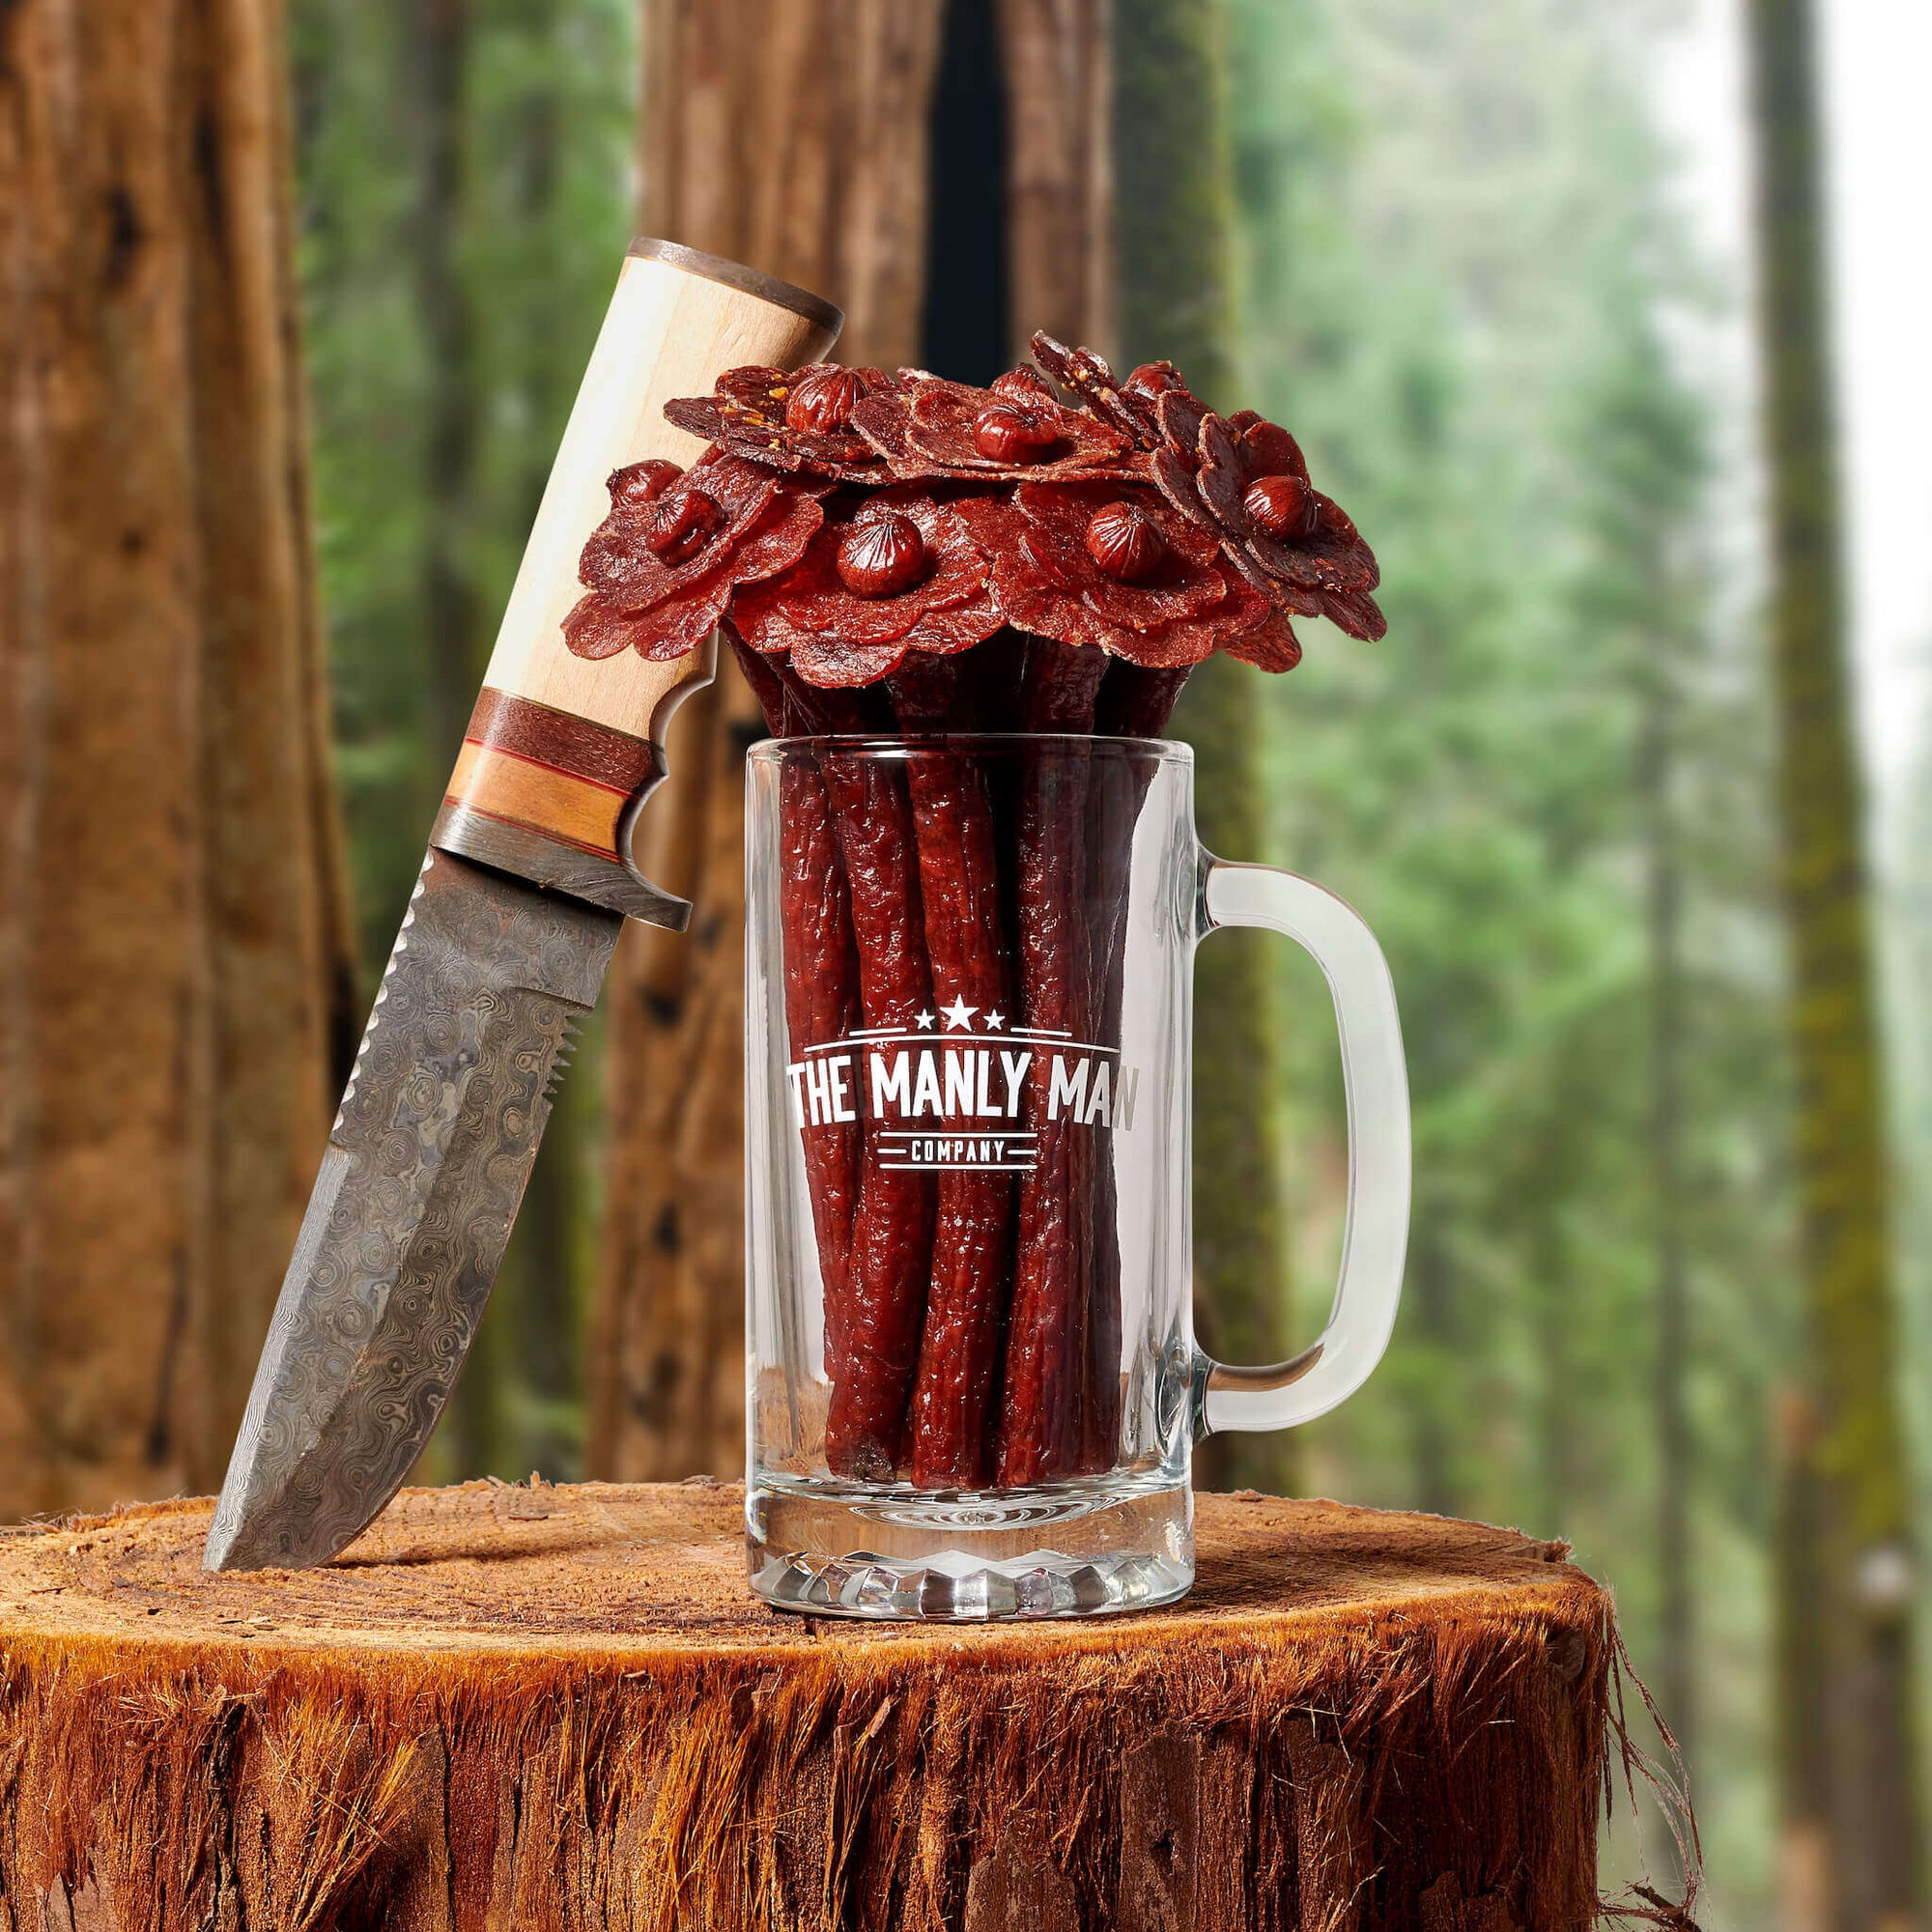 Edible Husband Appreciation Day gift bouquet sitting atop of tree stump in forest